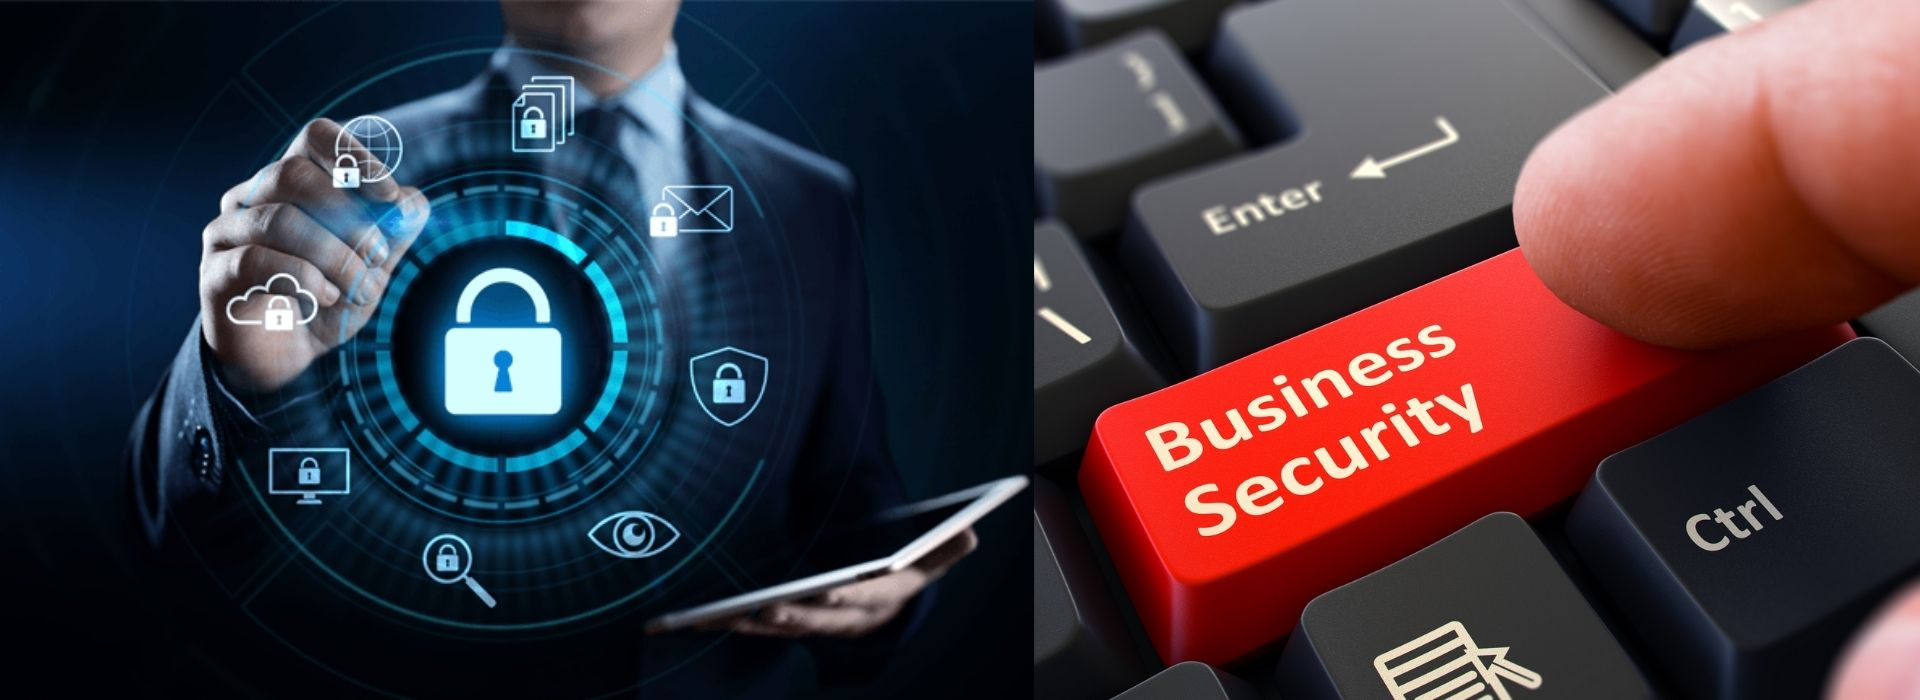 Want To Keep Your Business Protected? Use These Advanced Security Tools